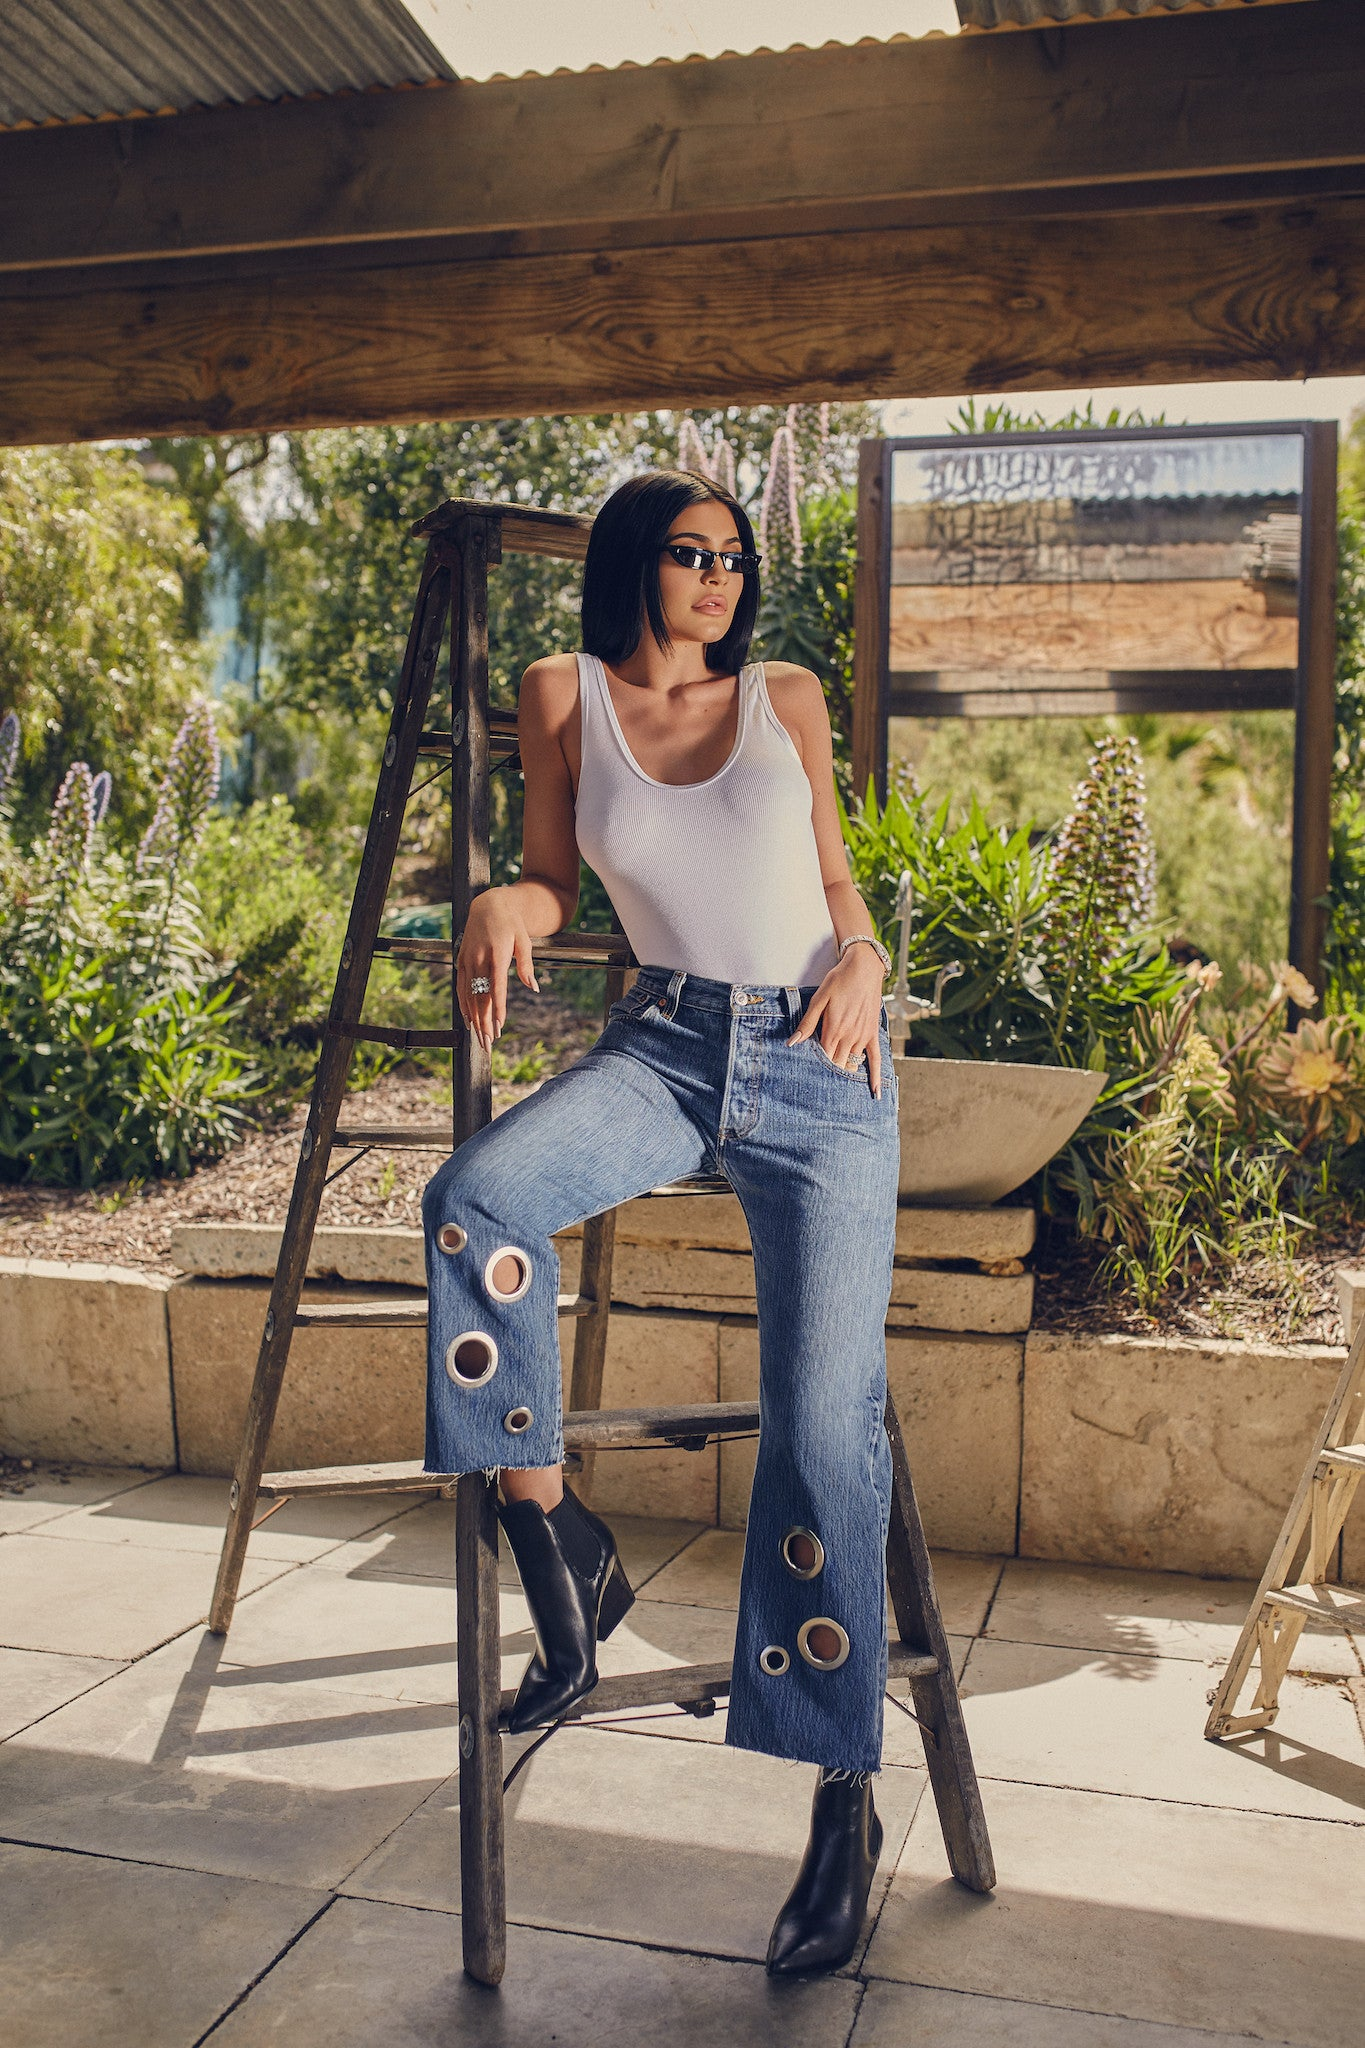 GROMMET VINTAGE JEAN BOTTOMS by KENDALL + KYLIE